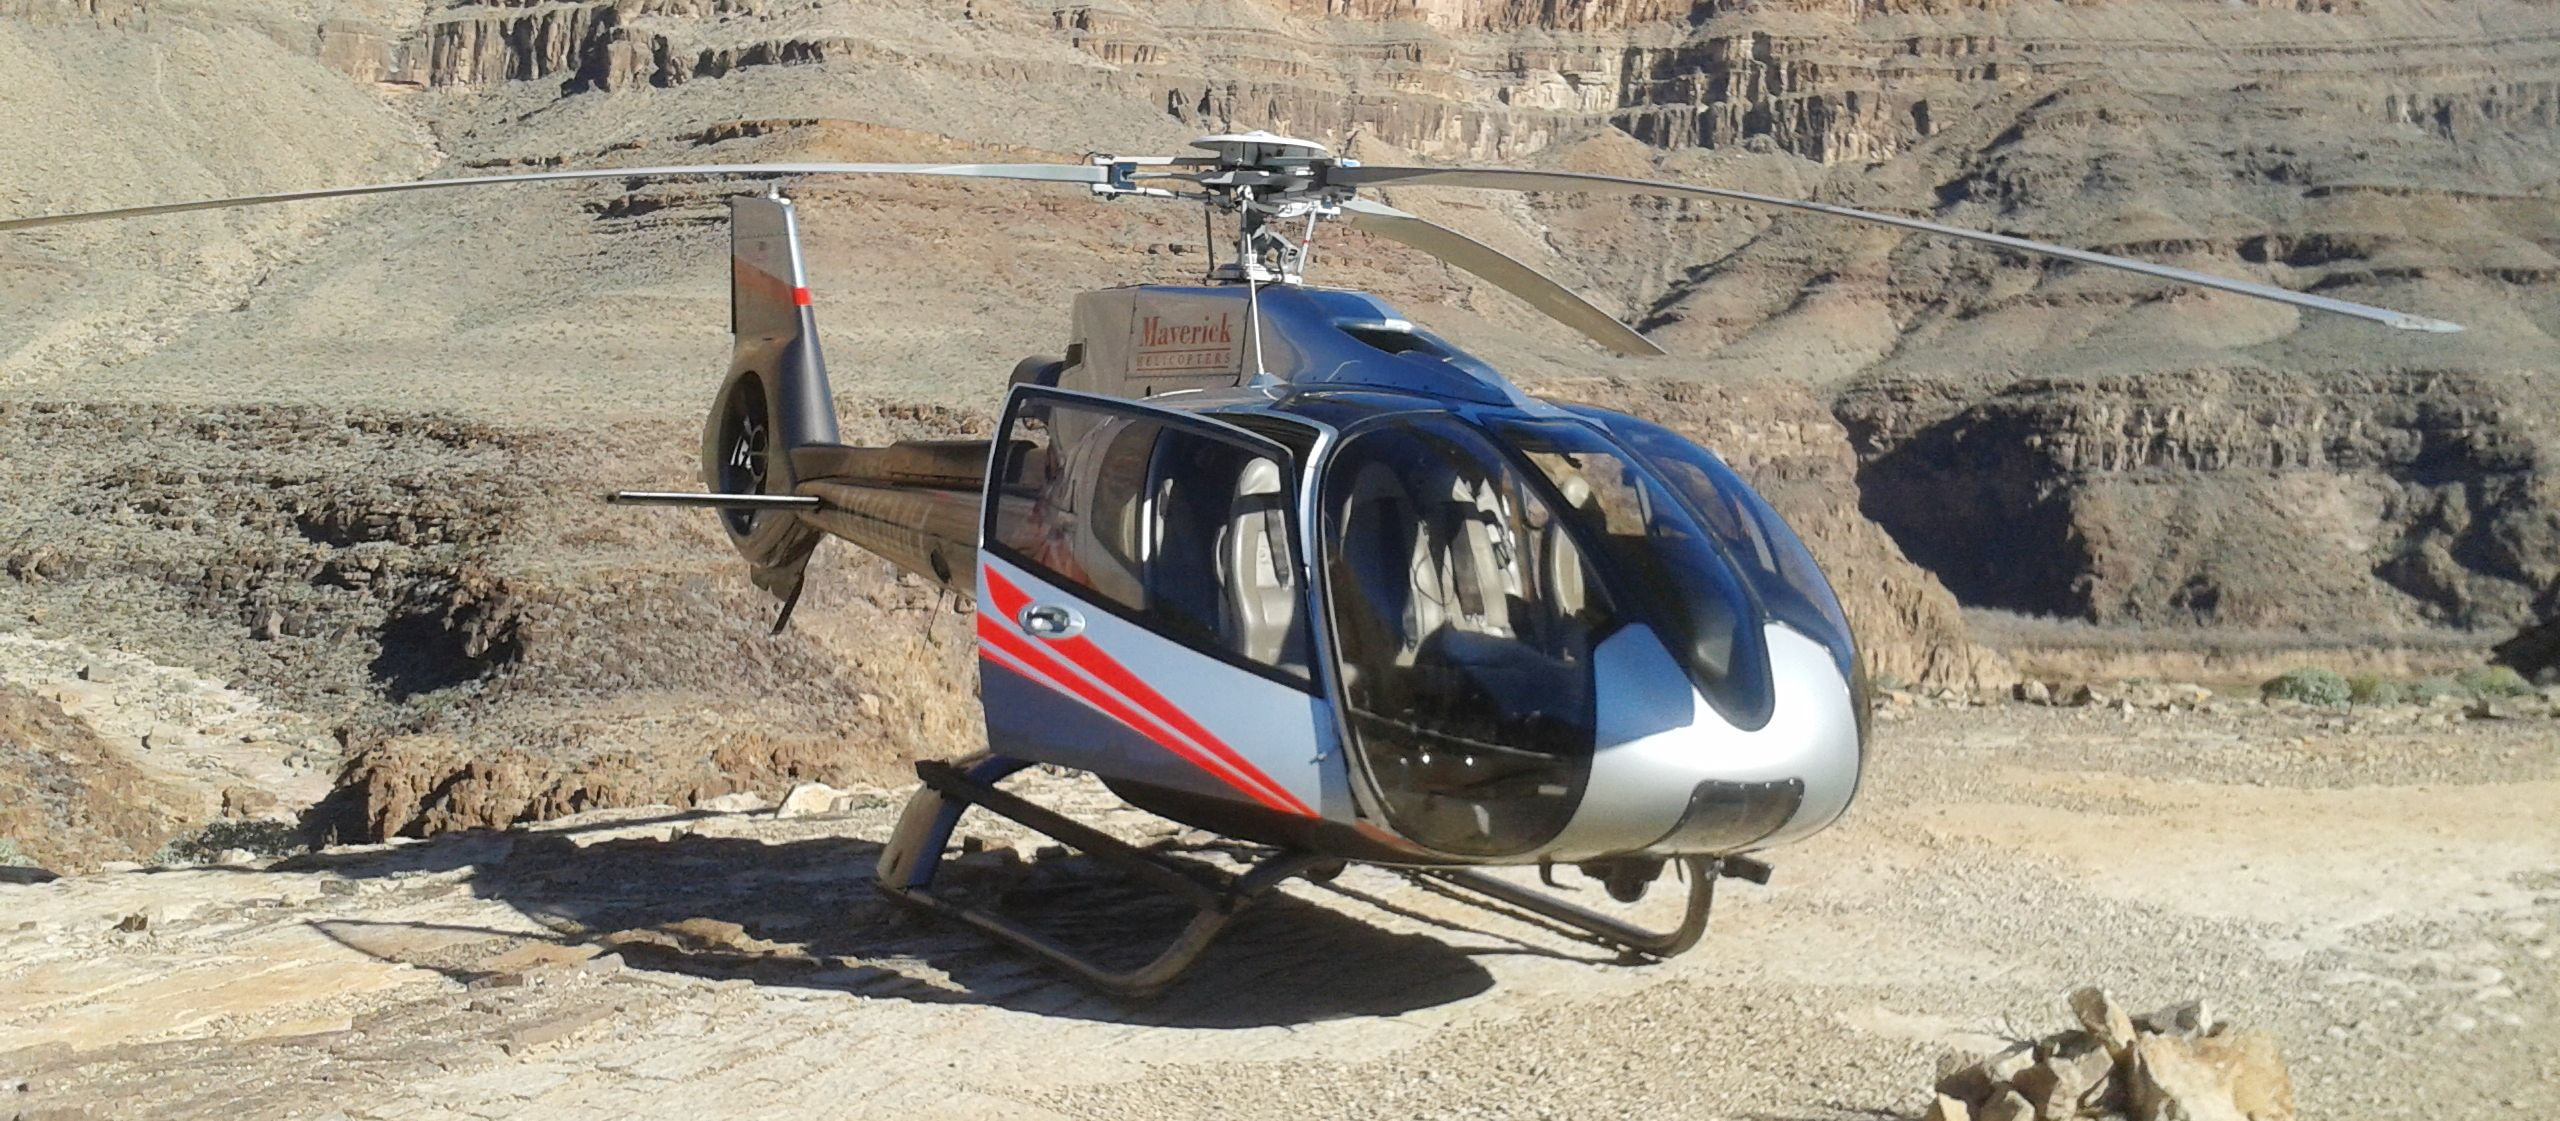 Maverick Helikopter im Grand Canyon